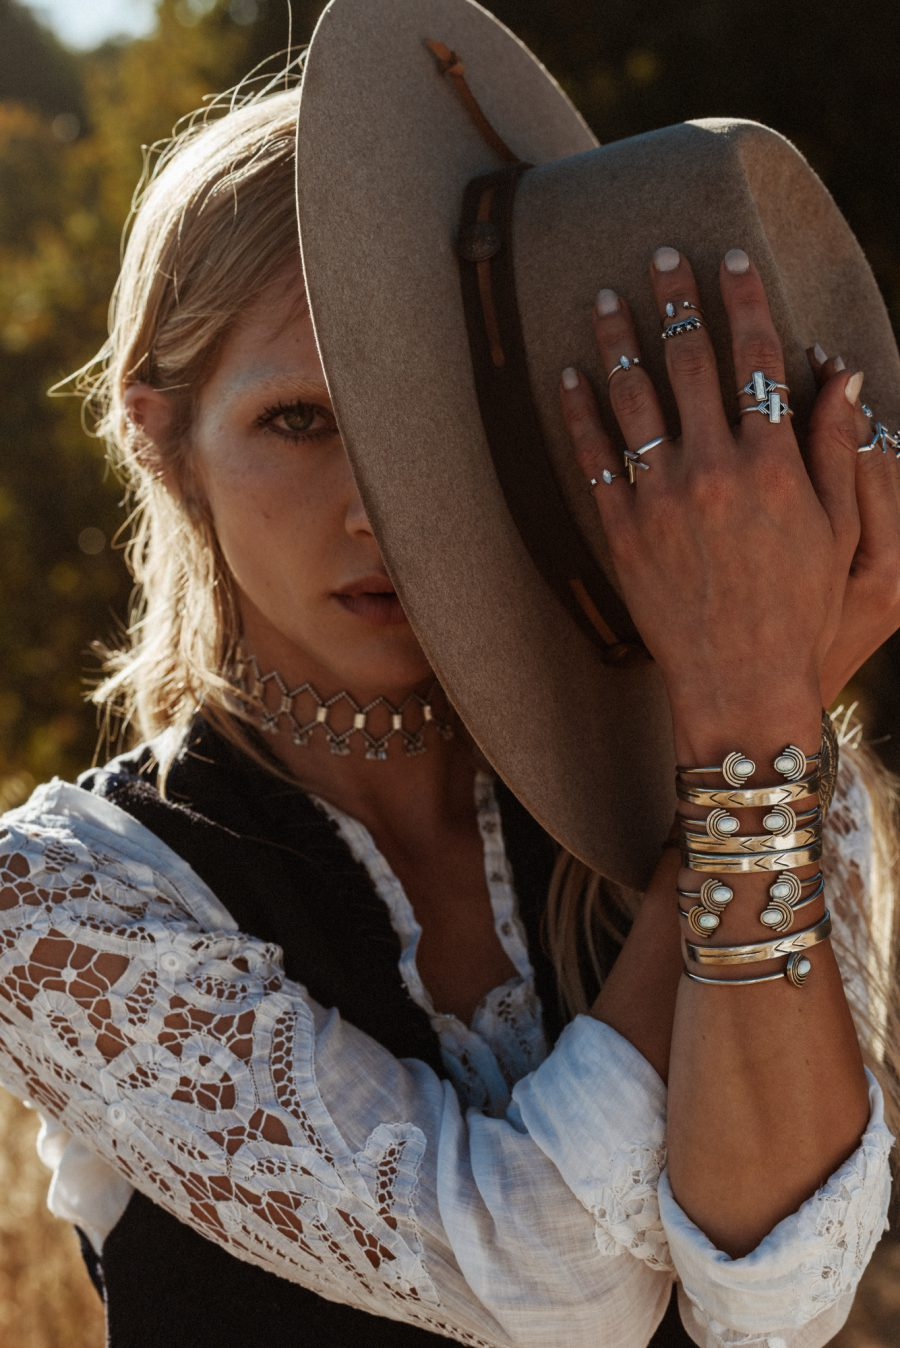 Western & Bohemian Outfits Completed With The 2 Bandits Jewellery For Fall-Winter 2018